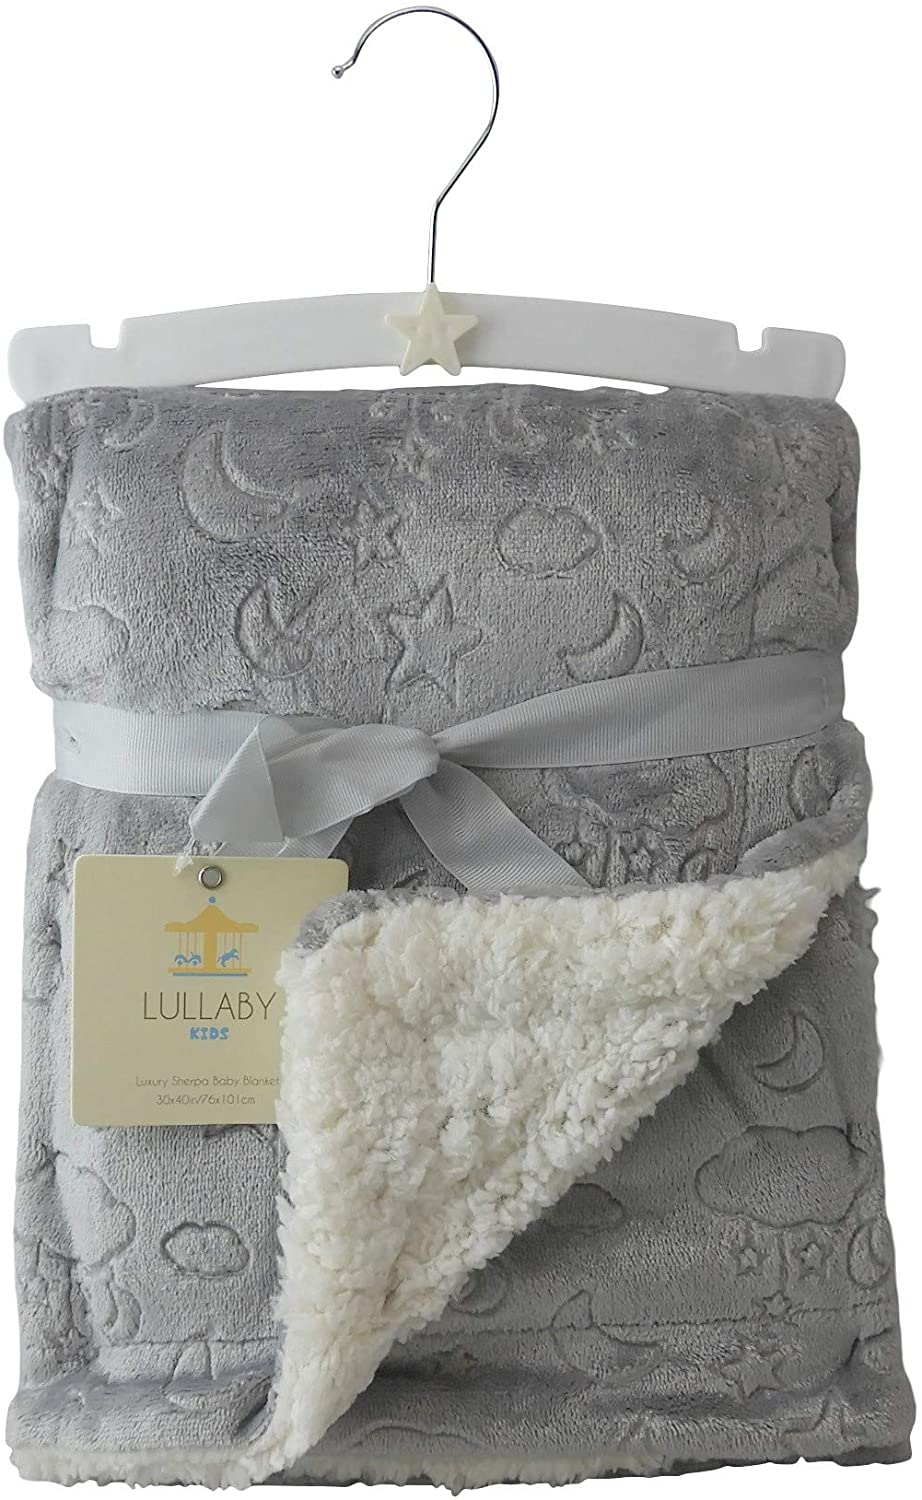 Dependable Lullaby Kids Luxury Clouds Stars Moon Etched Pattern Sherpa Baby Blanket (Silver)